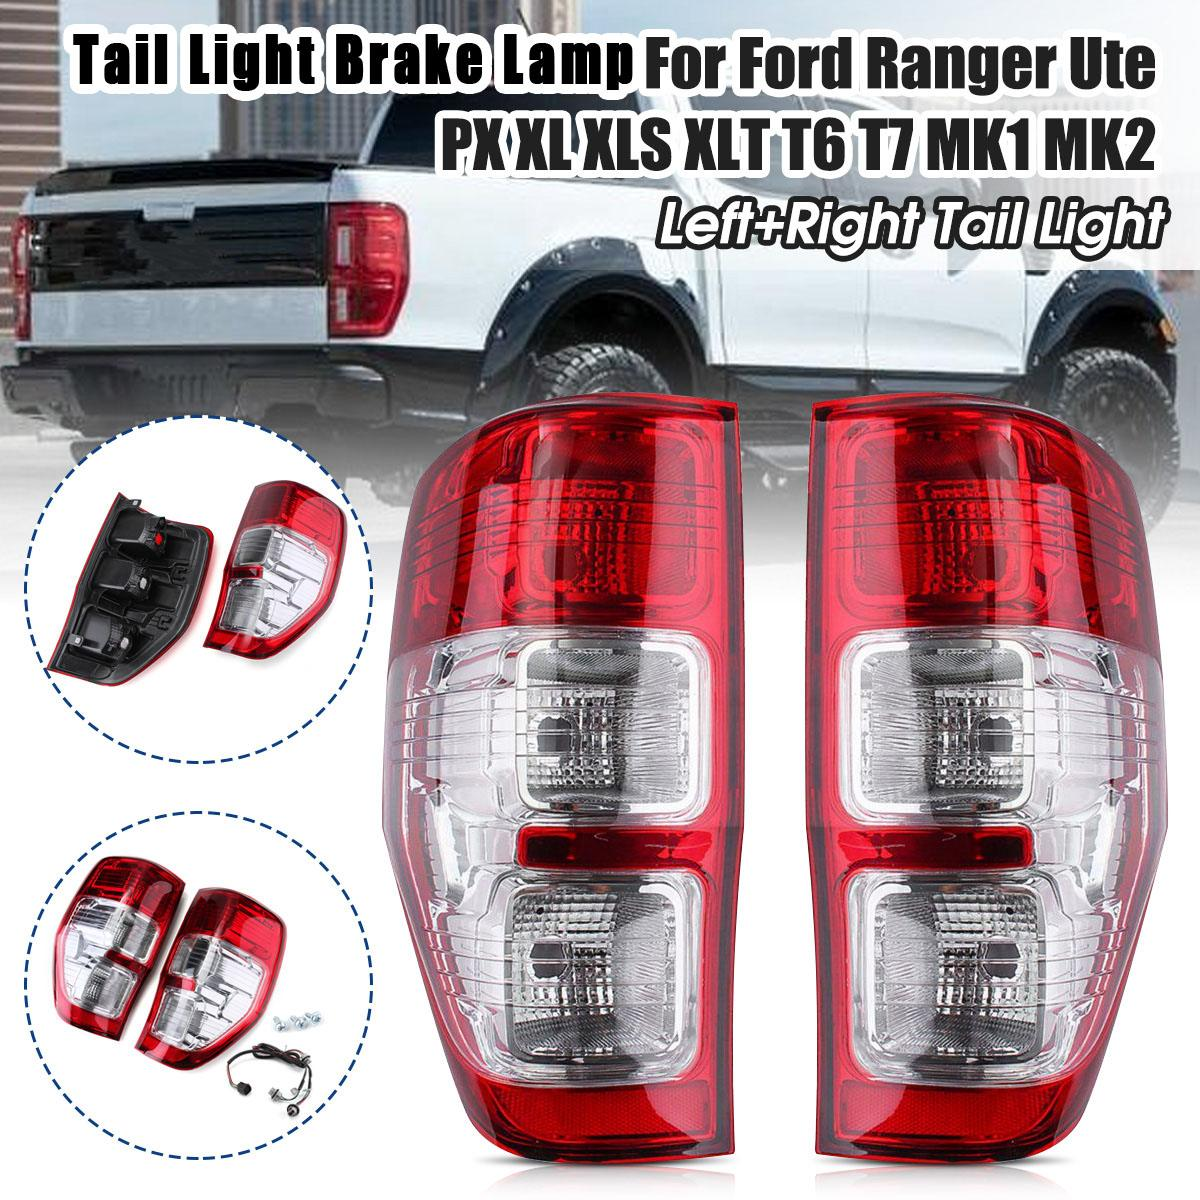 Pair Left/Right Tail Light Brake Lamp For Ford Ranger Ute PX XL XLS XLT 2011 2012 2013 2014 2015 2016 17-2020 With Wire Harness